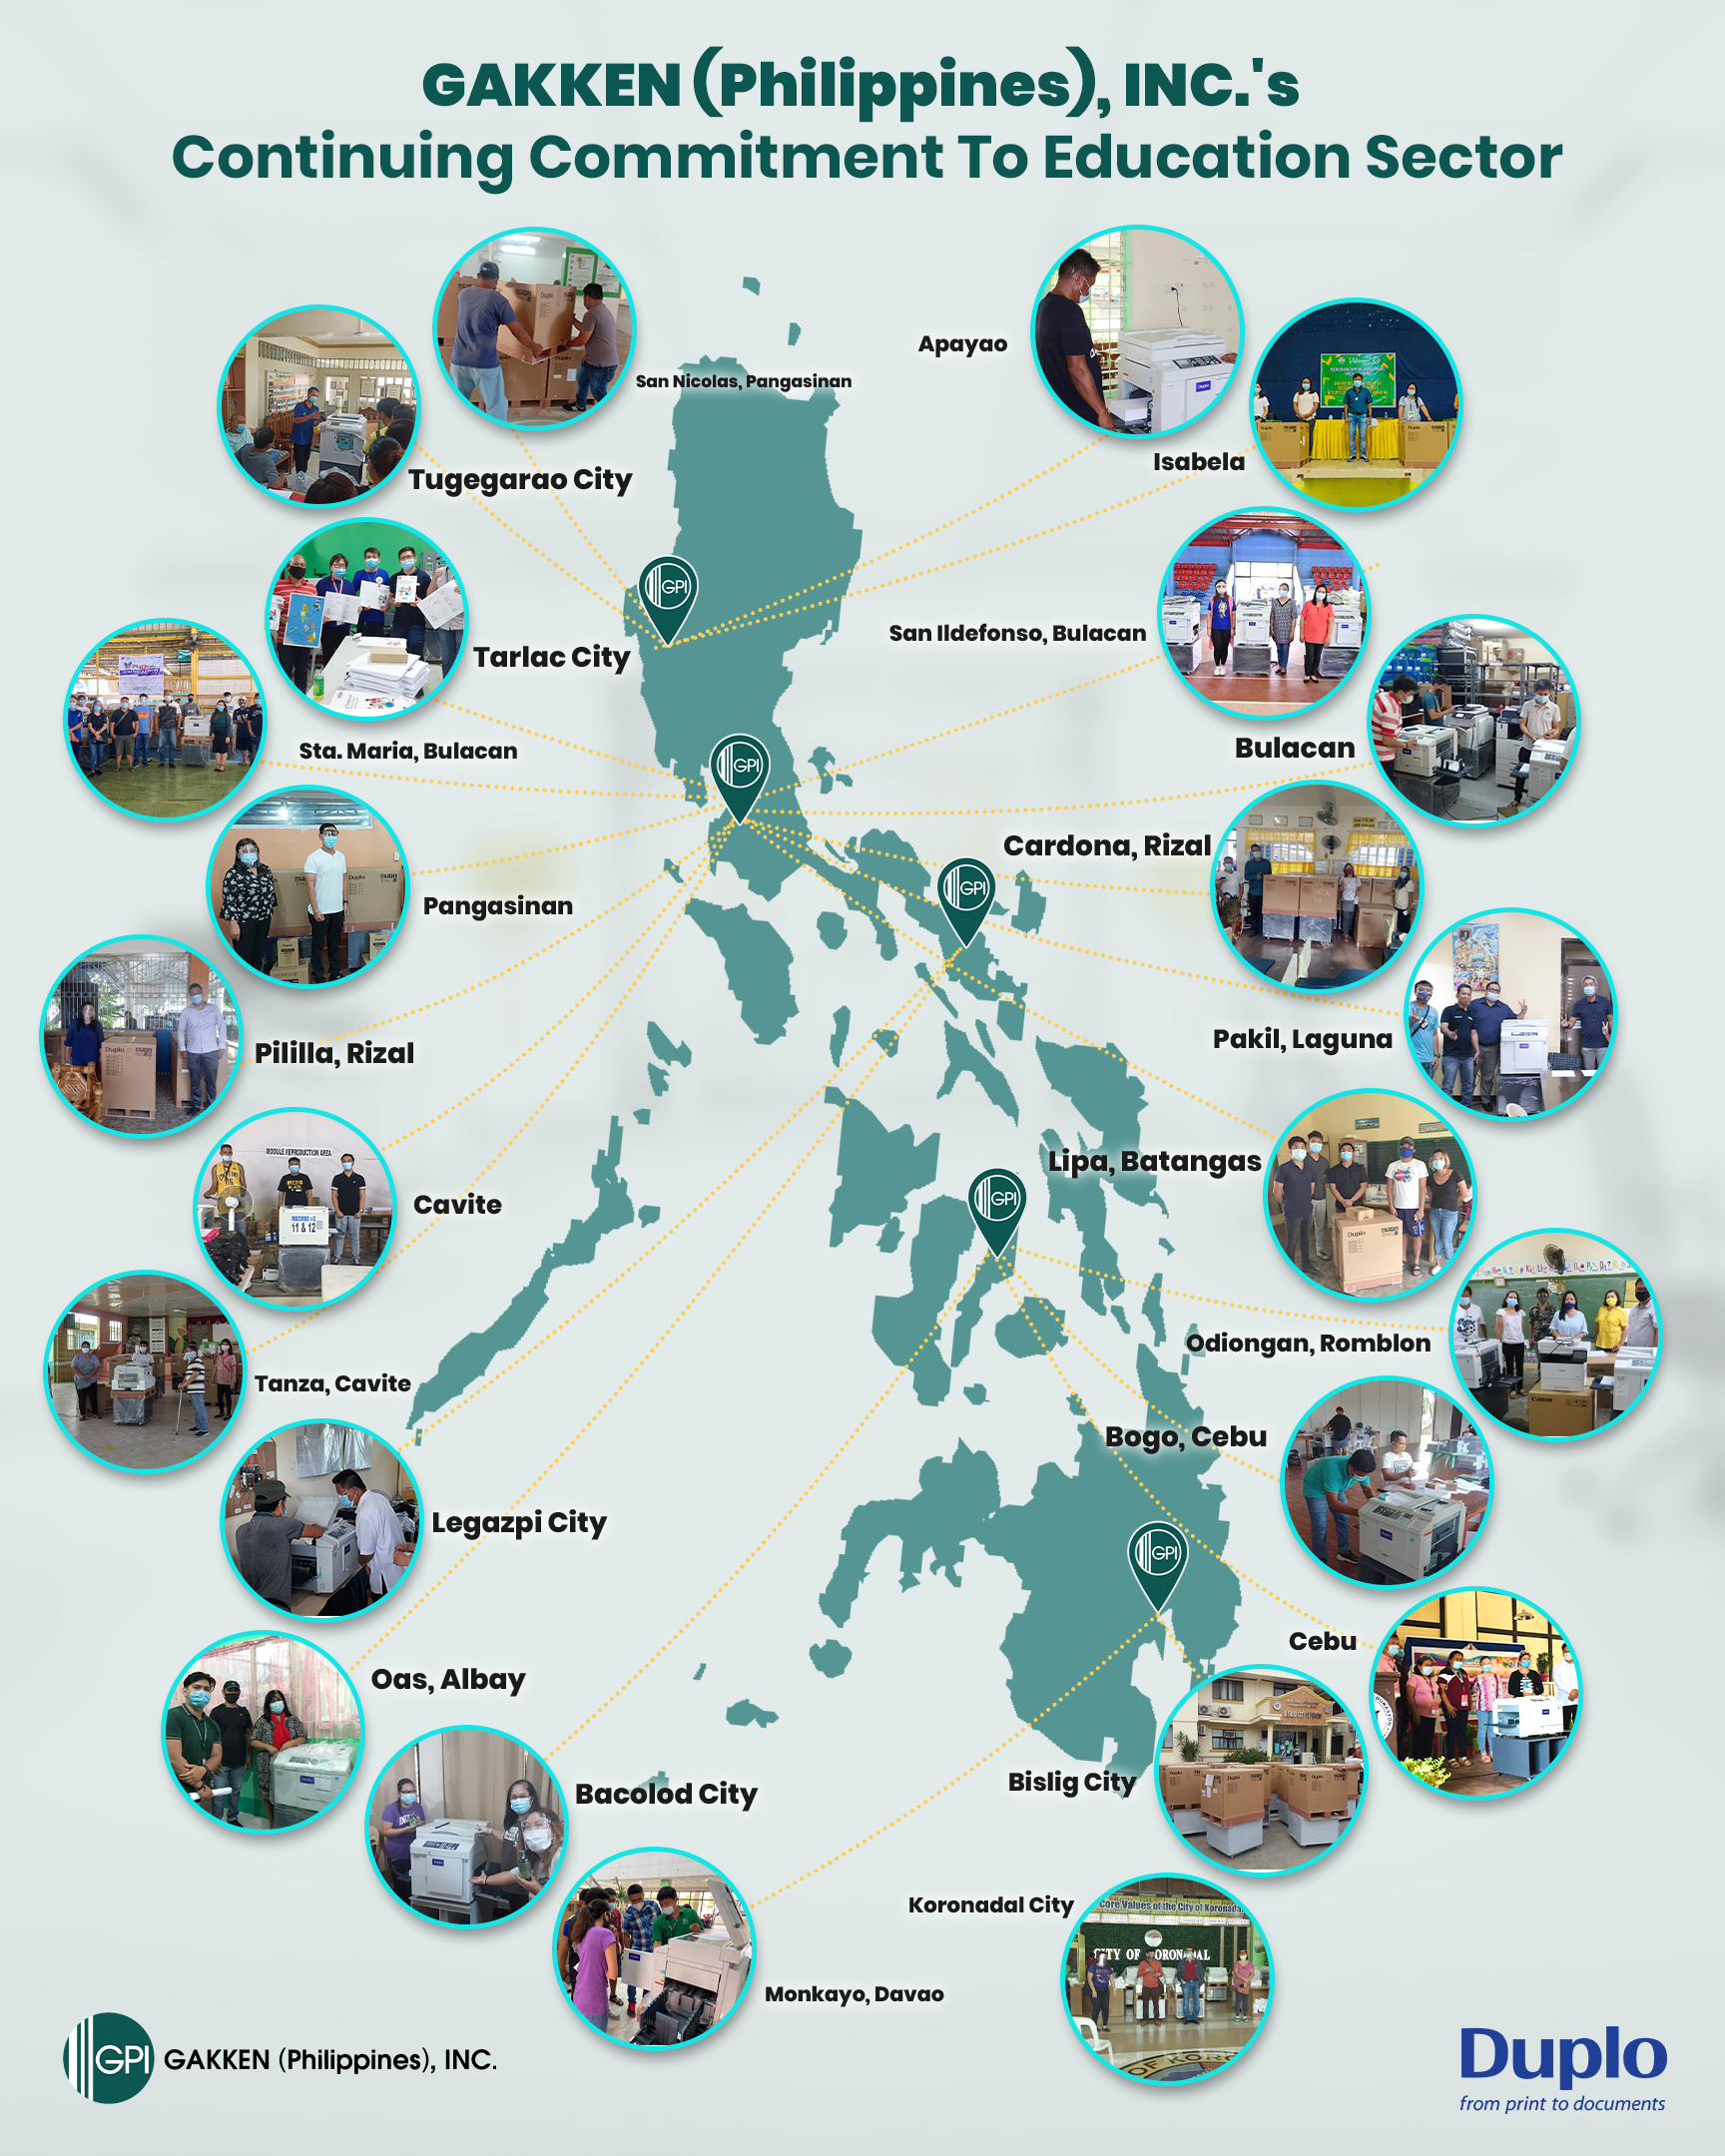 GAKKEN (Philippines), INC., Continuing Commitment To Education Sector